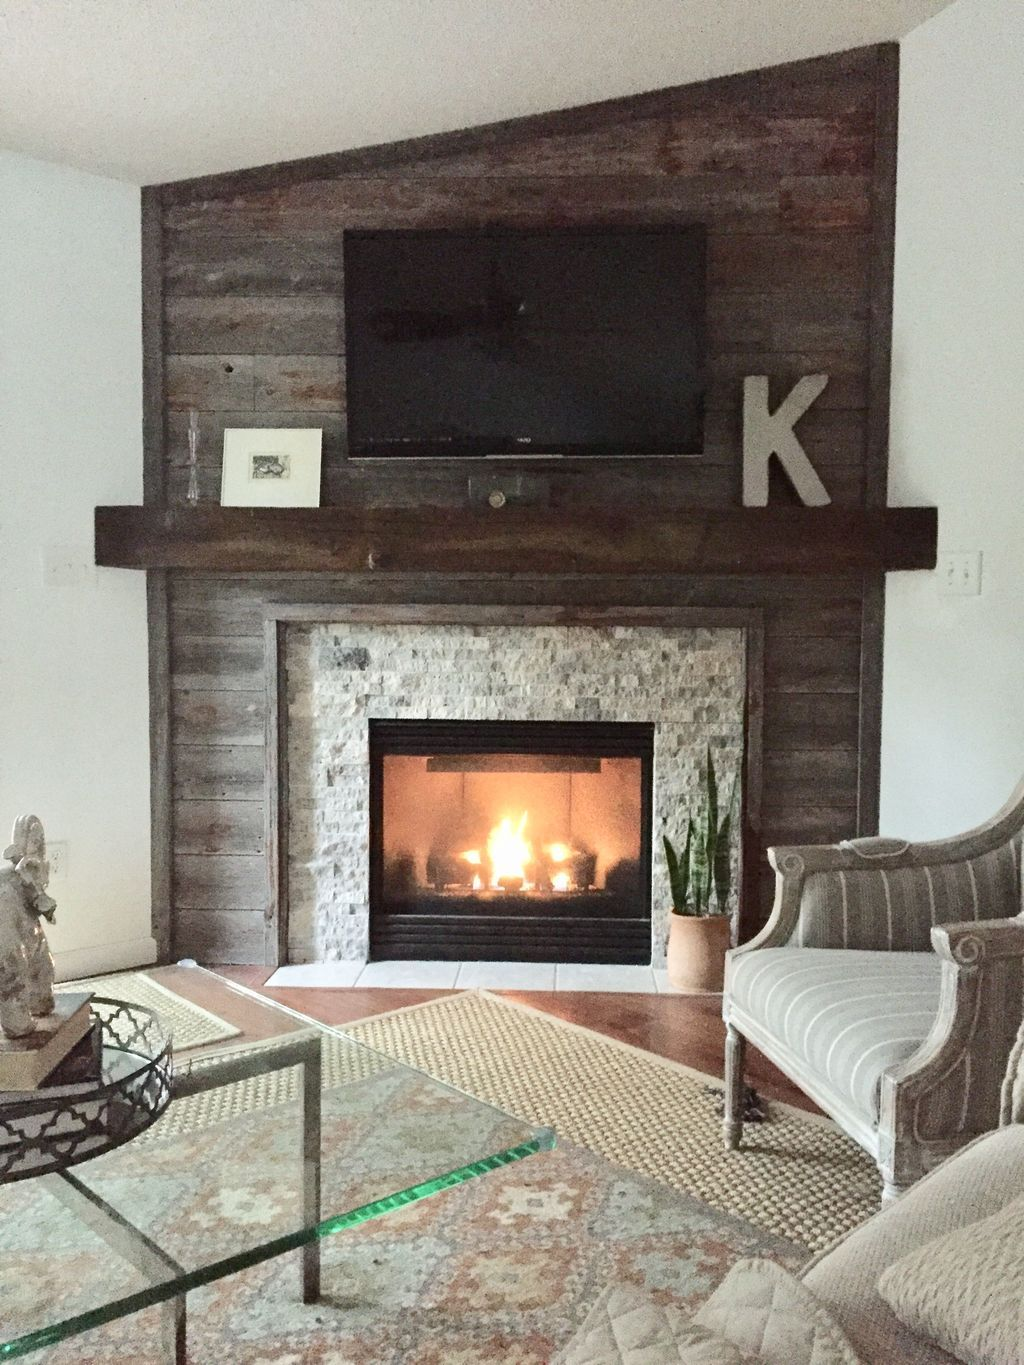 38 Ideas For Living Room: 38 Stunning Clad Cover Fireplace Ideas